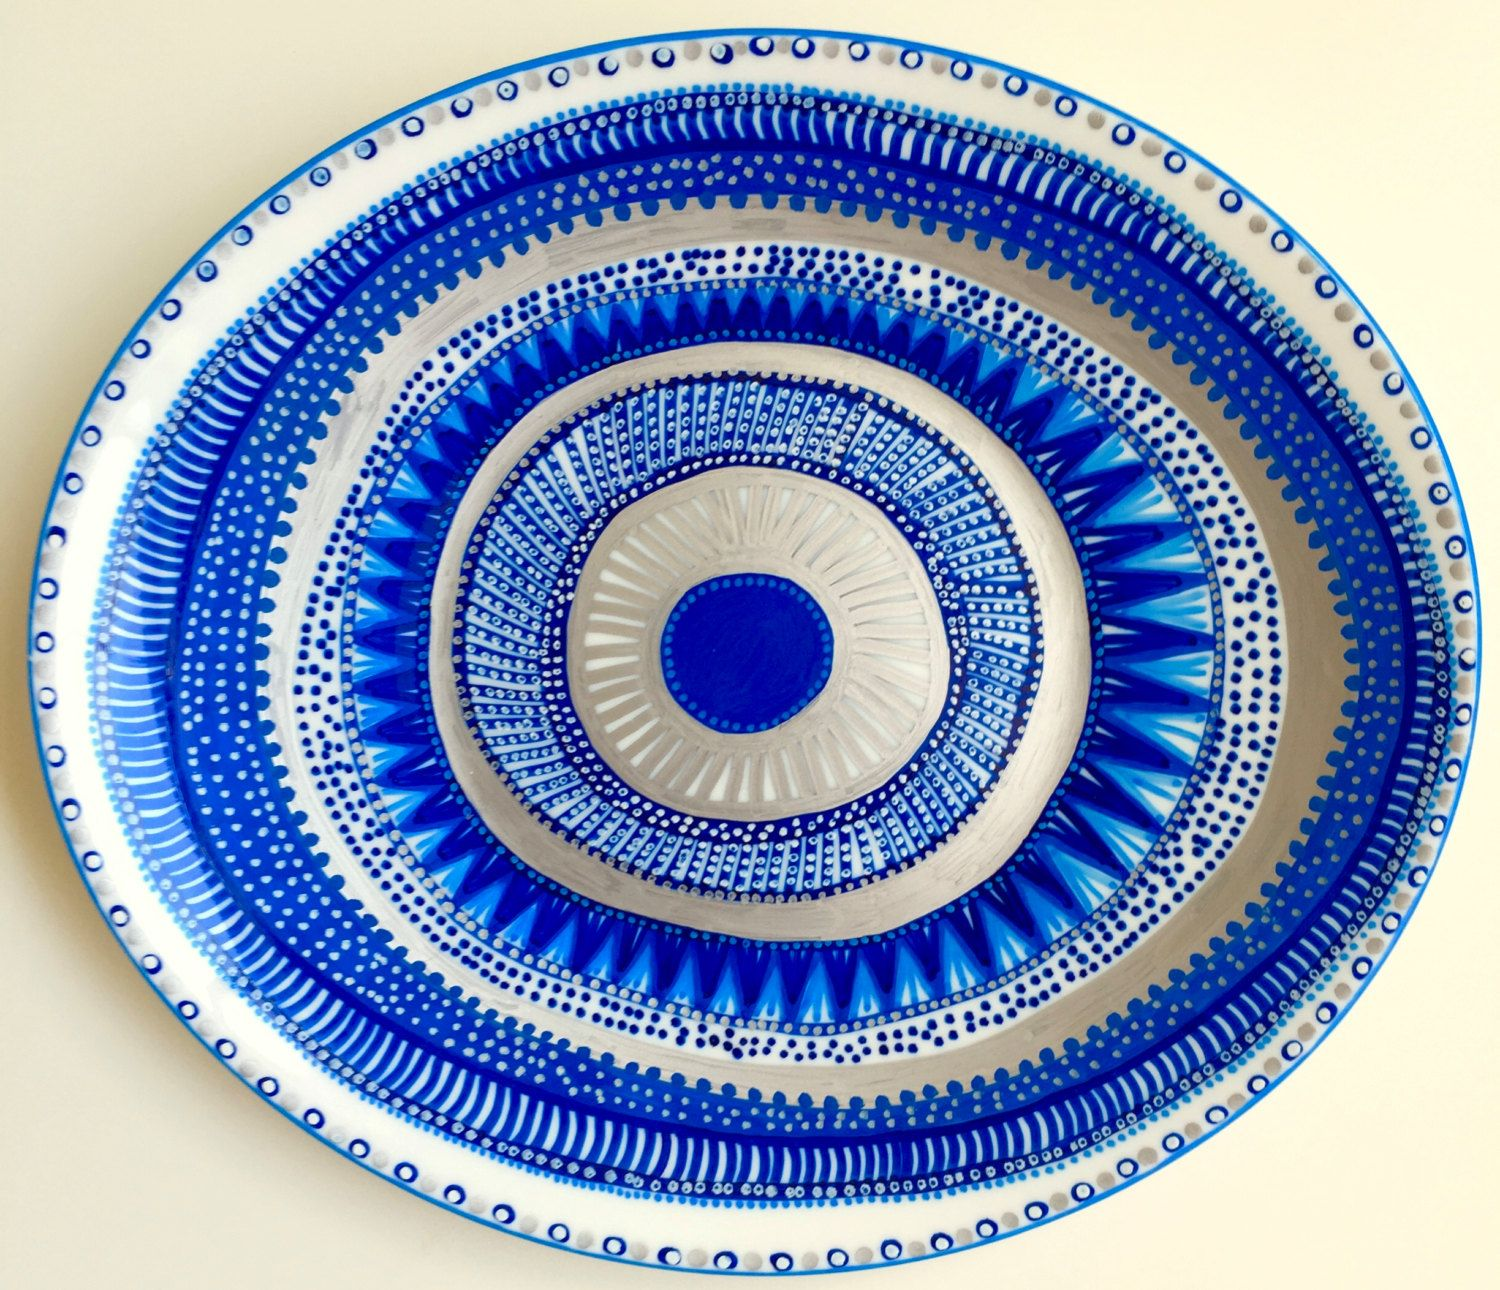 Evil Eye Decor Decorative Plate Mandala Decor Blue Decor